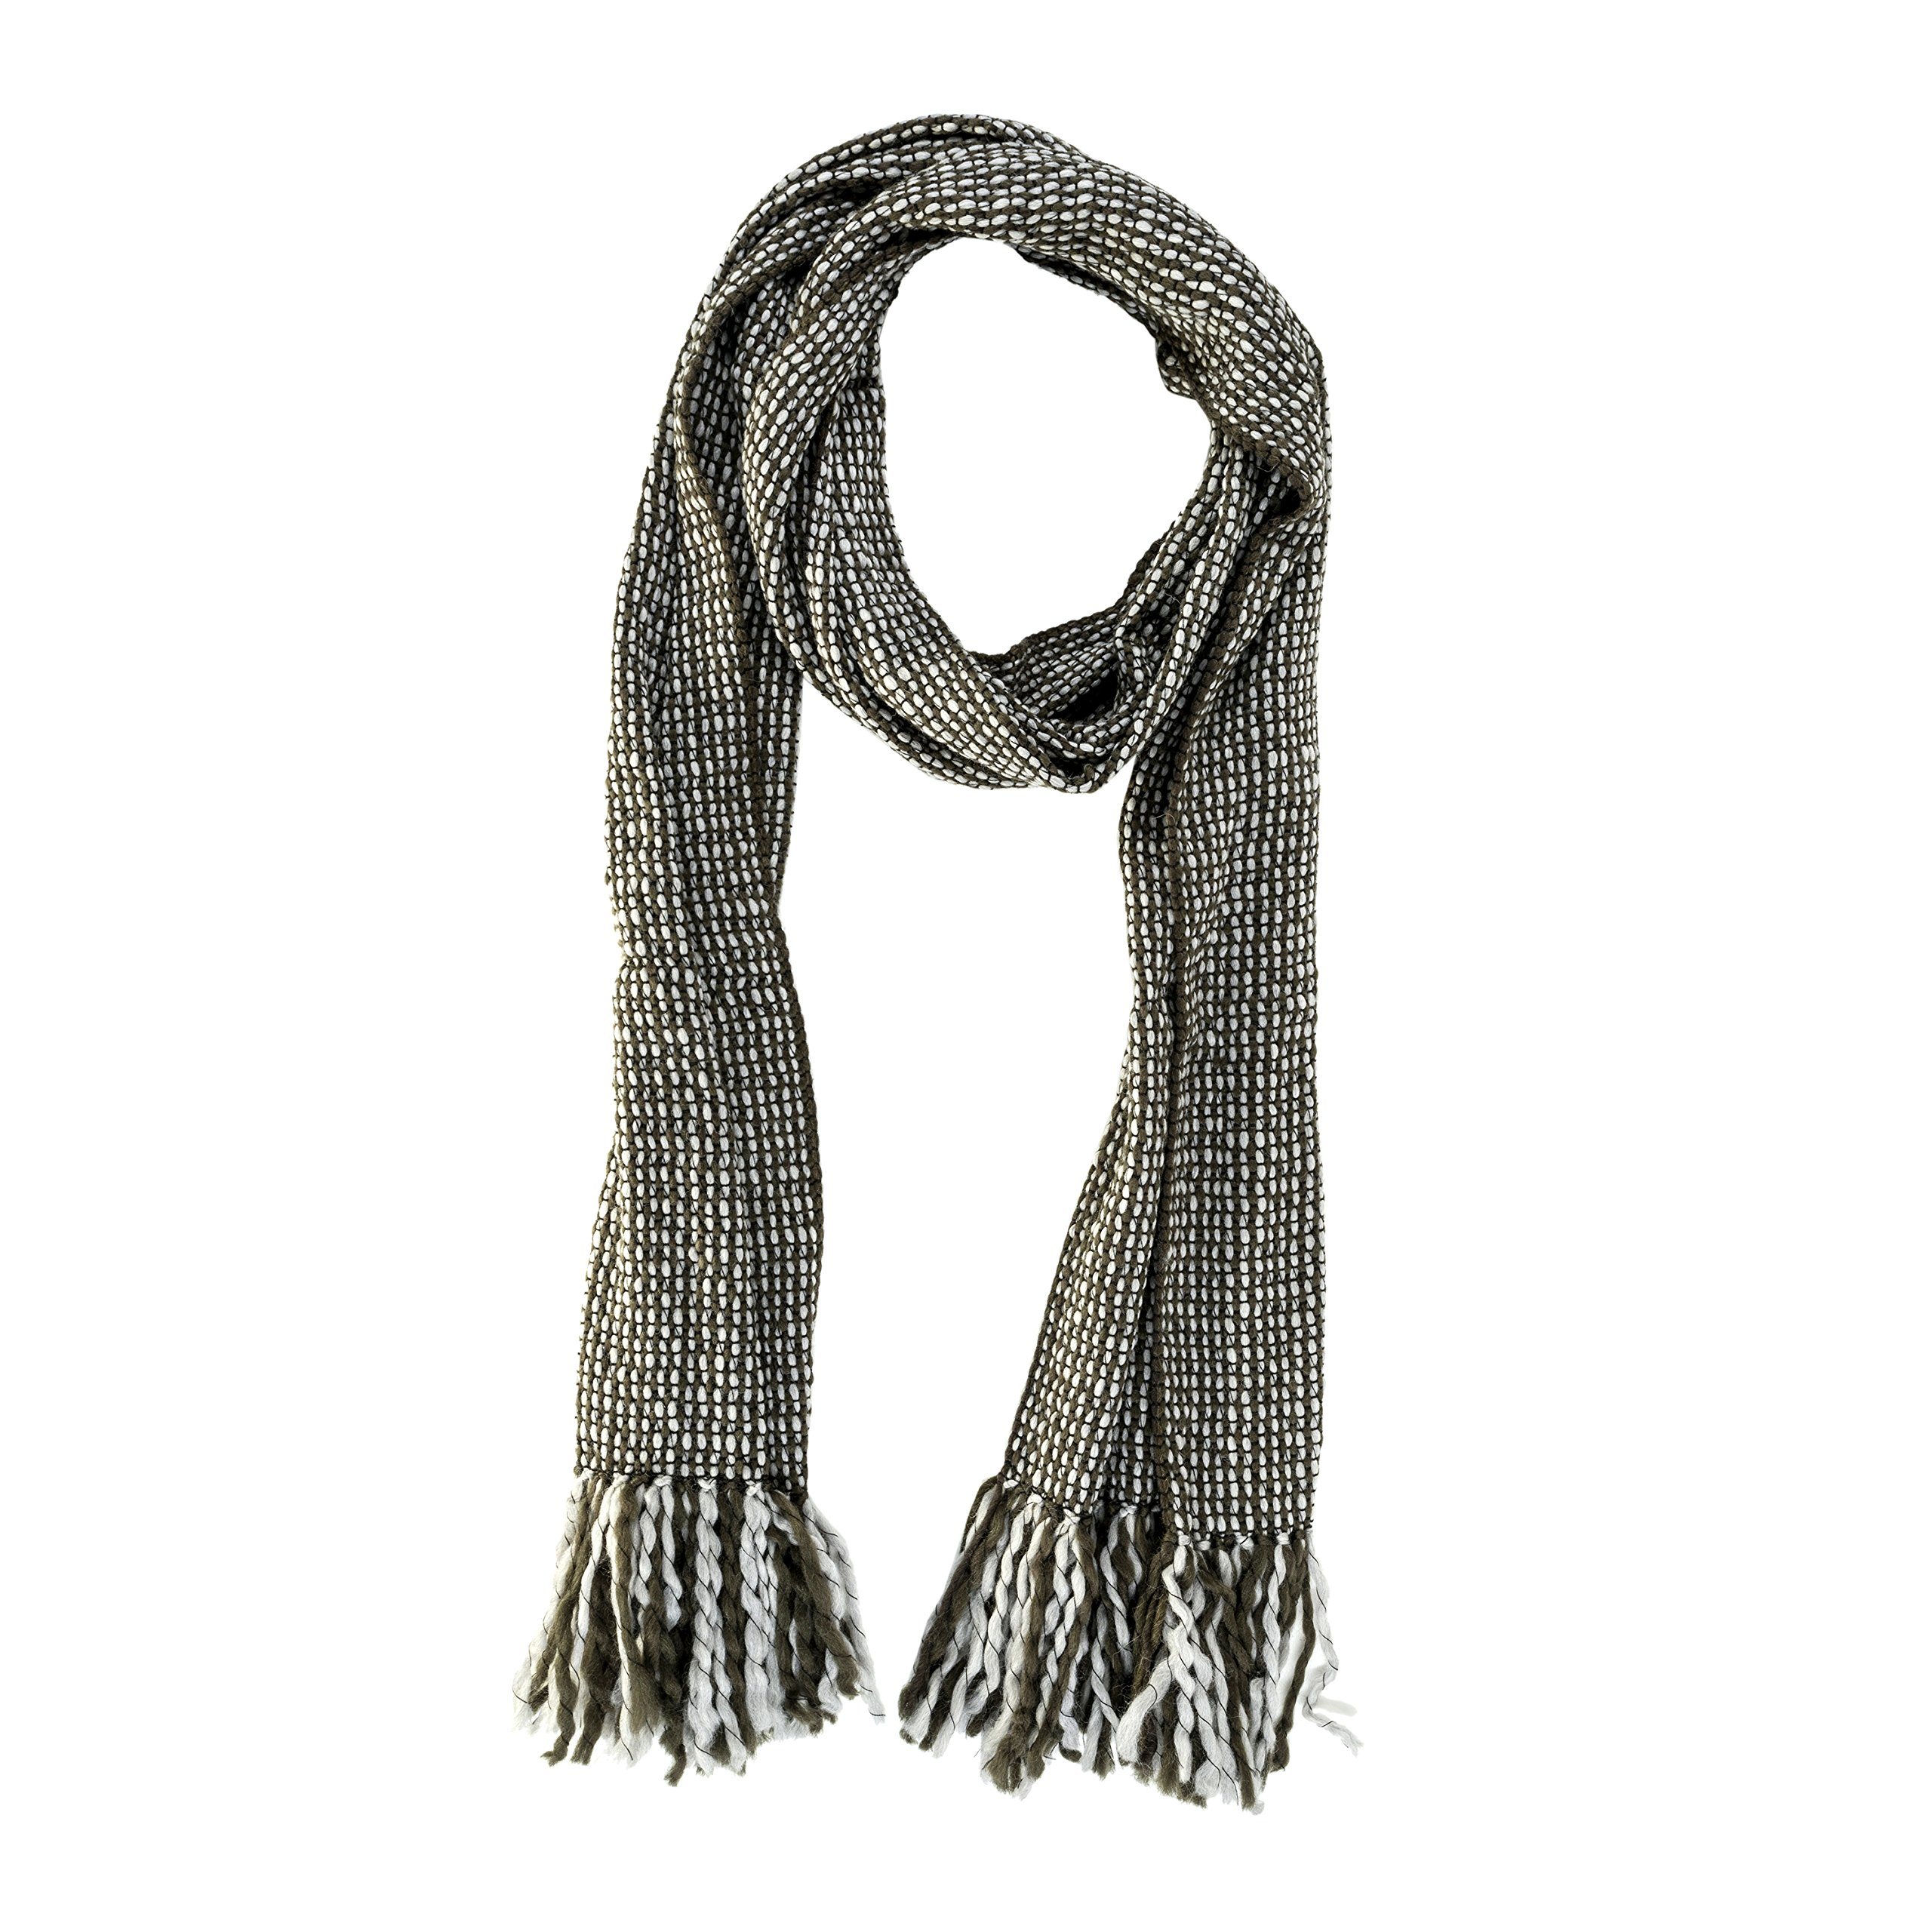 Tumia LAC - Striped Thick, Extra Long Luxurious Scarf - Handmade and Very Warm - Unisex - Olive Gray